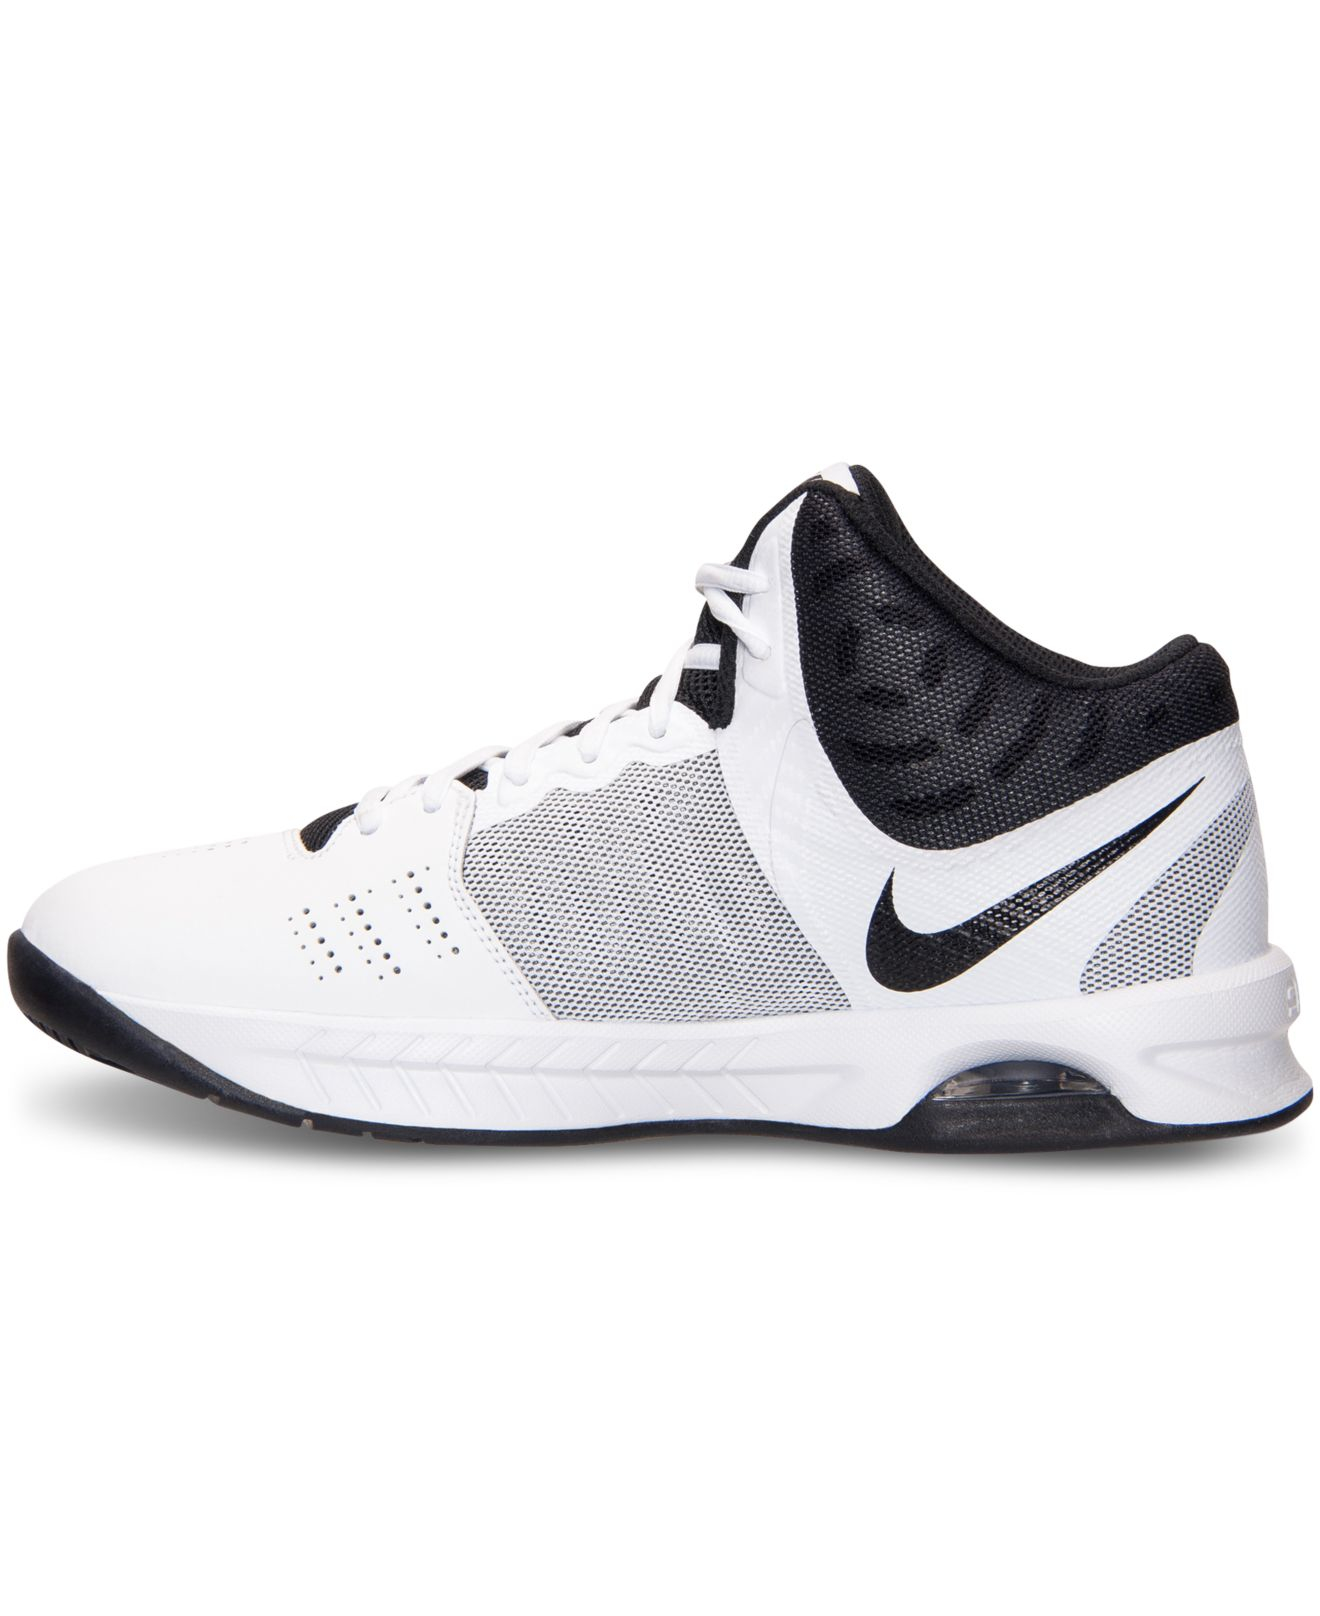 13a5f9a9235e Nike Men s Air Visi Pro Vi Basketball Sneakers From Finish Line in ...